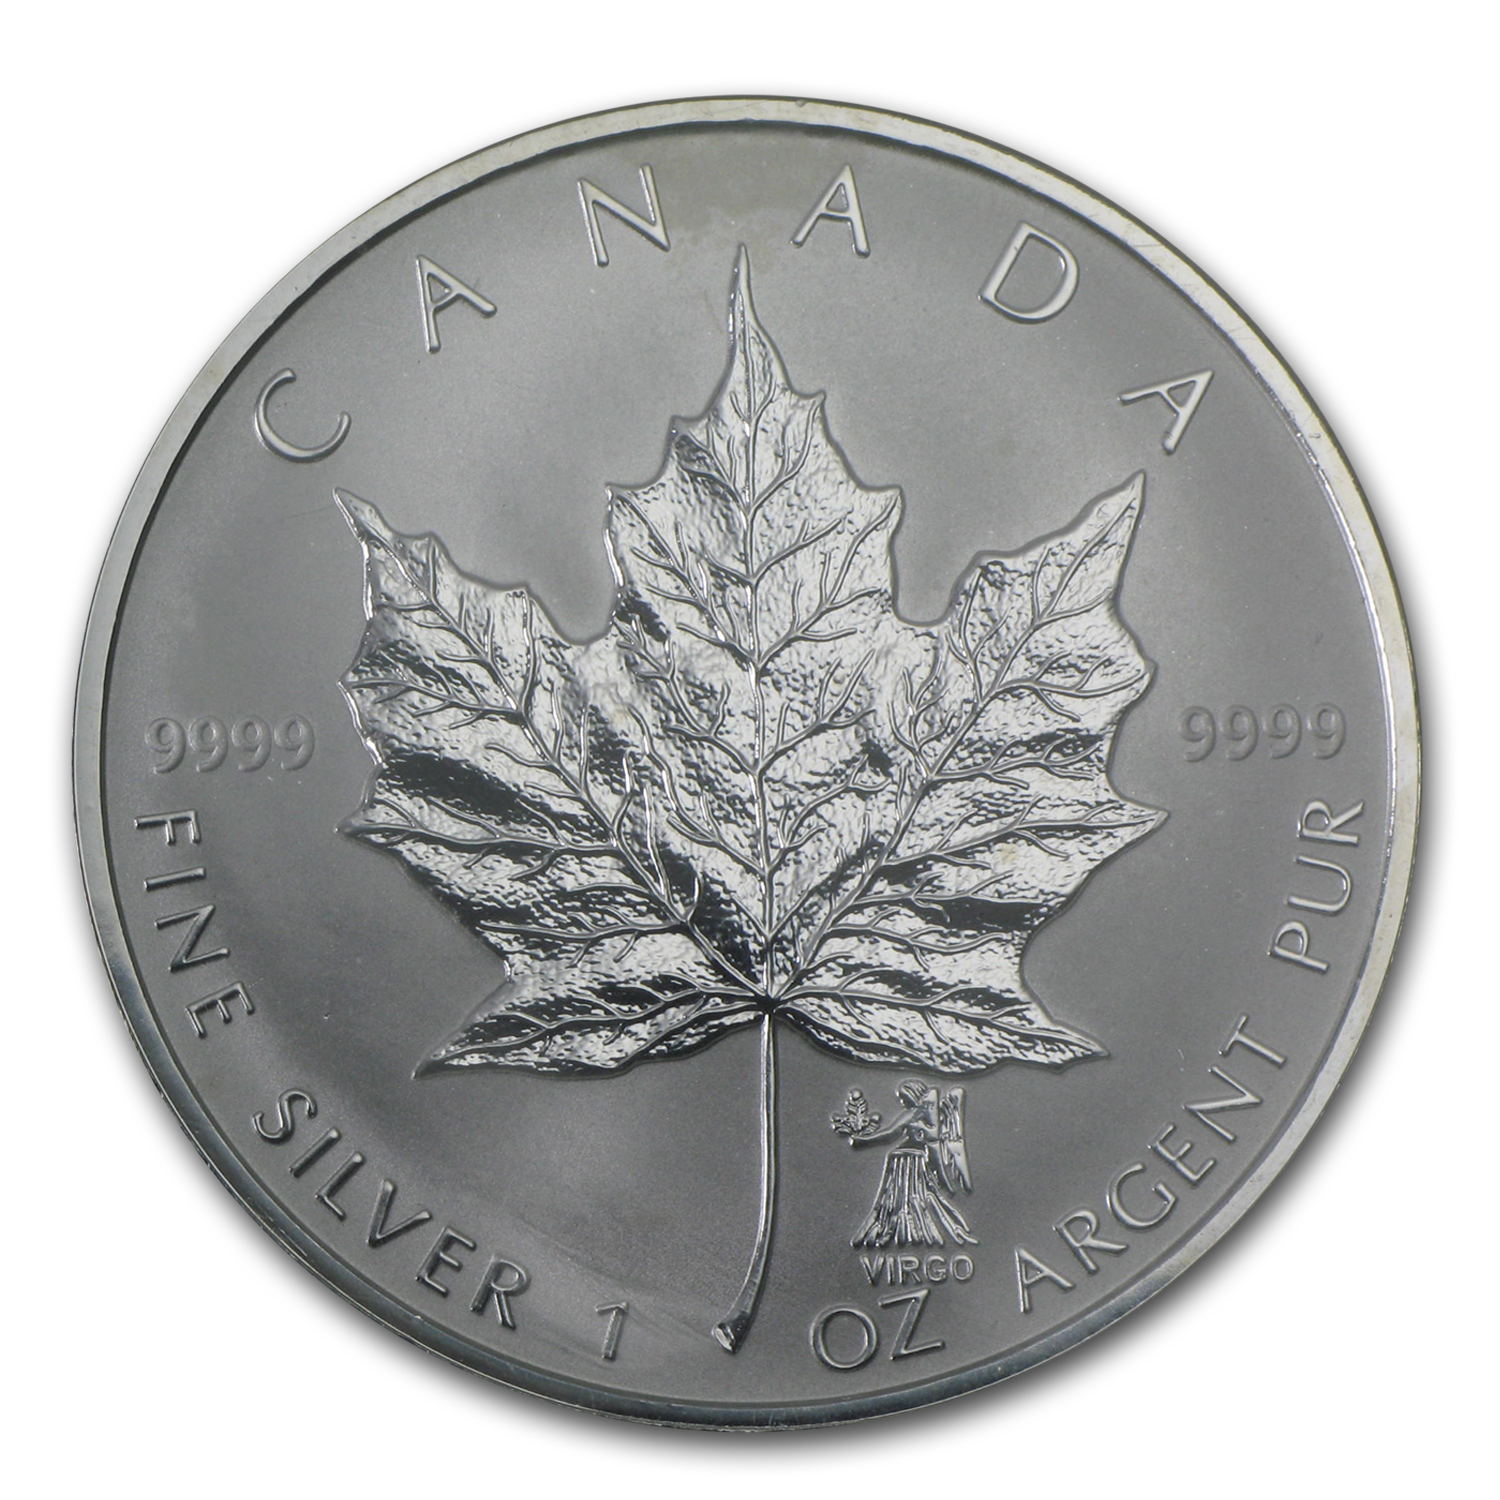 2004 Canada 1 oz Silver Maple Leaf Virgo Zodiac Privy